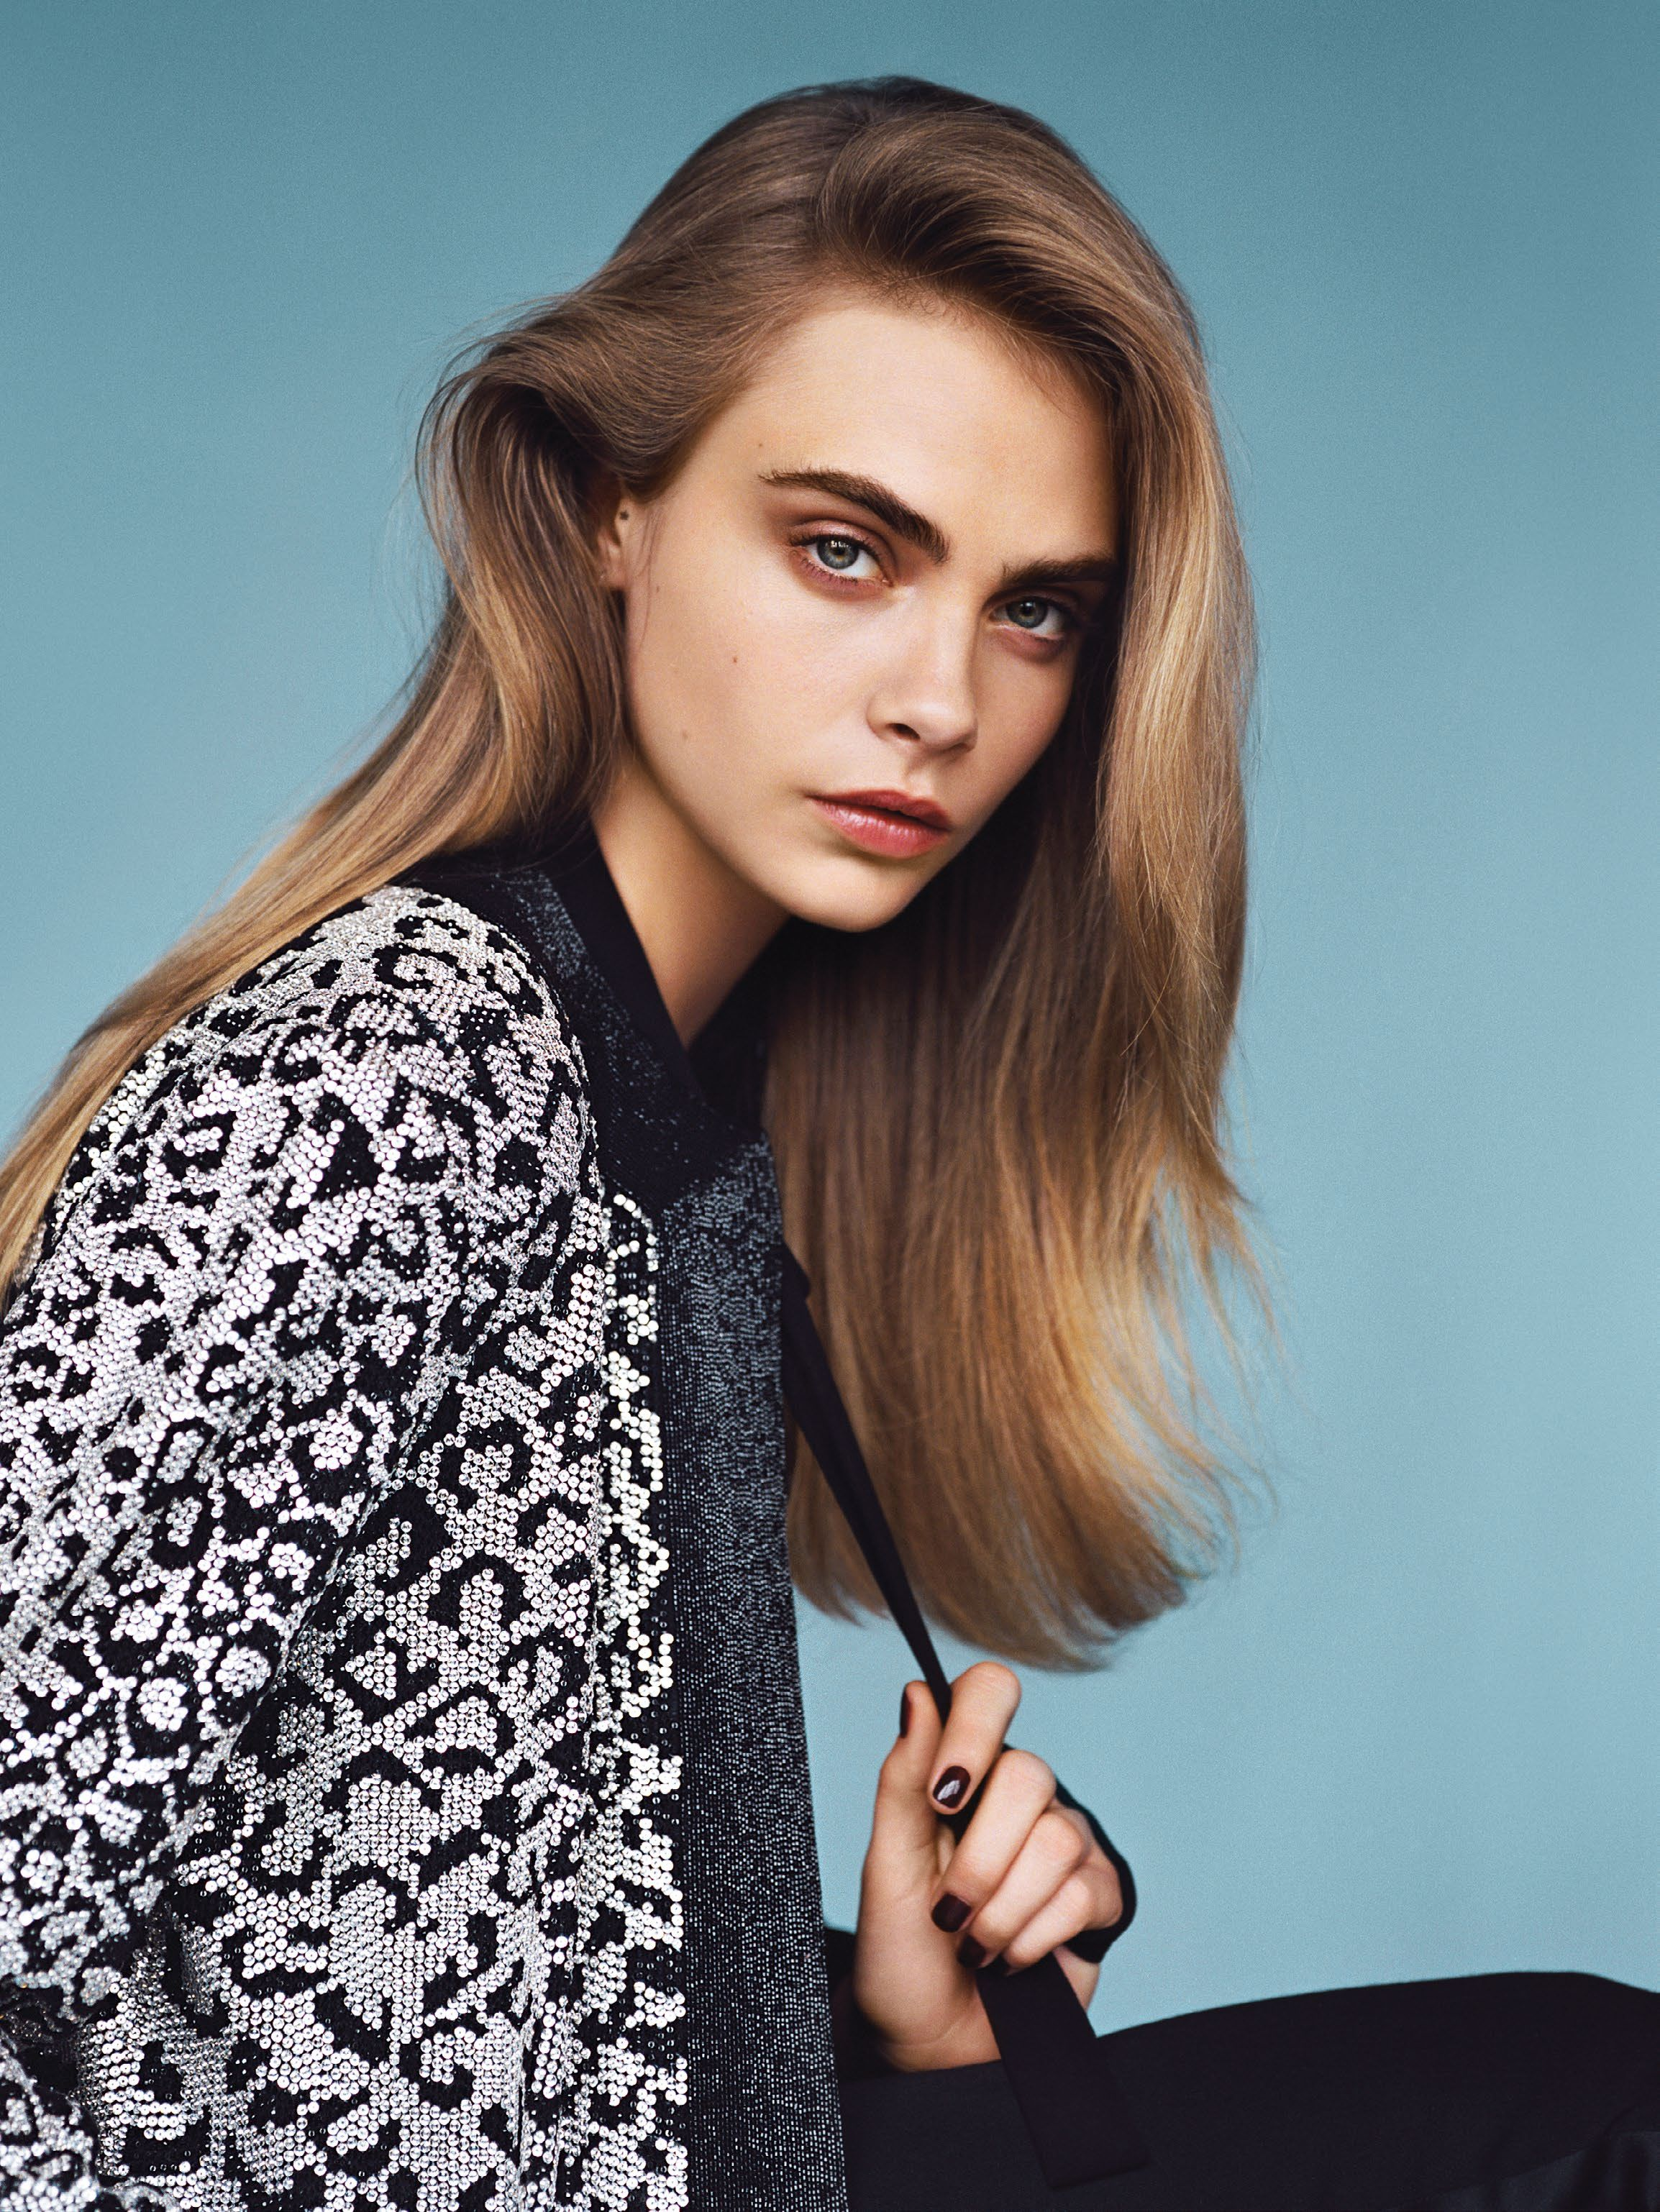 Cara Graces Her Second British Vogue Cover As The Iconic Magazine Take A Look At What Makes Phenomenon She Has Become